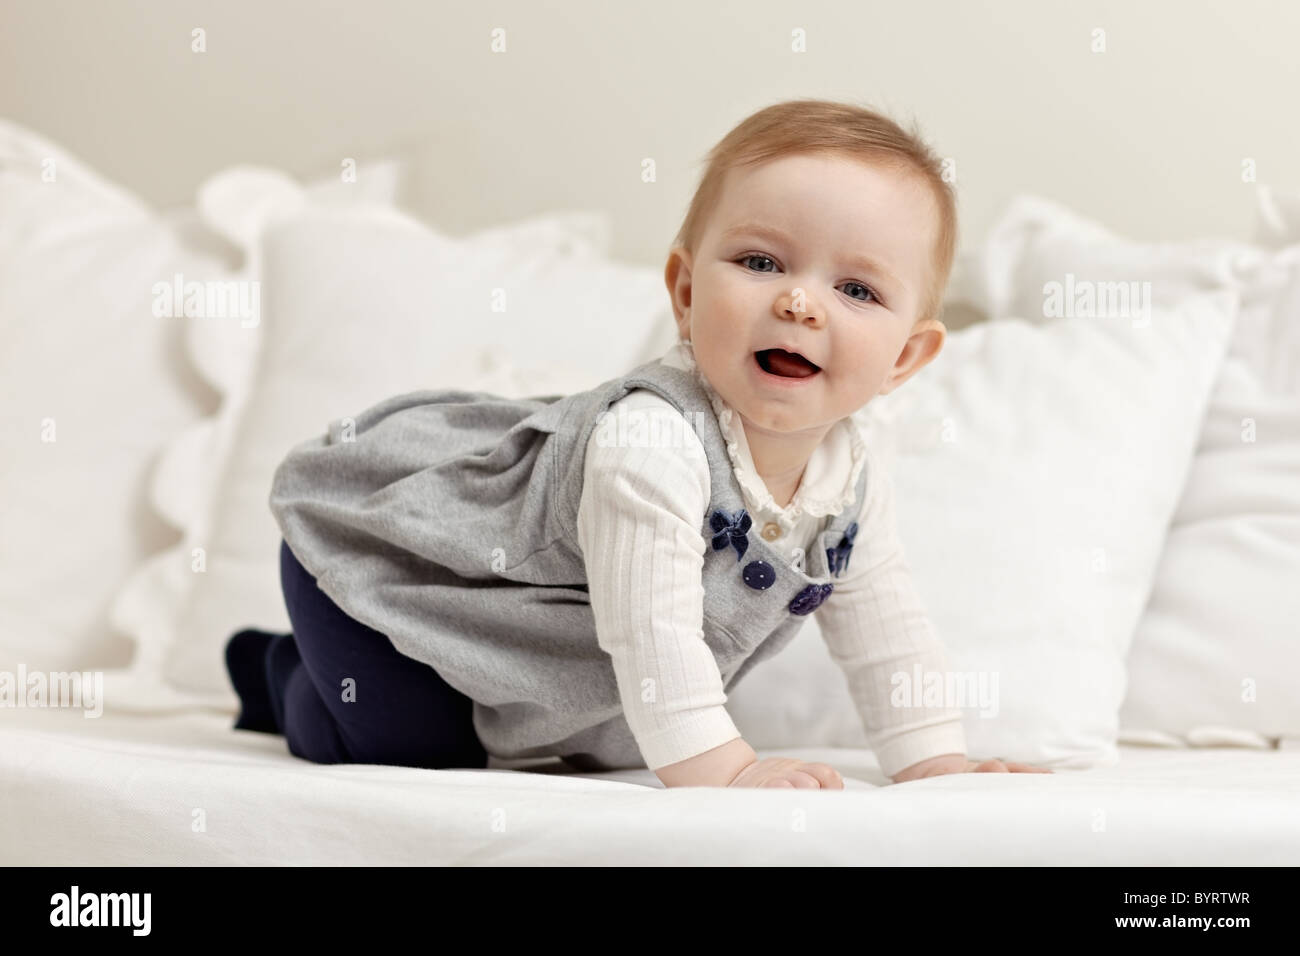 portrait of 6 months female child playing on bed and looking at camera. Horizontal shape, side view, full length - Stock Image